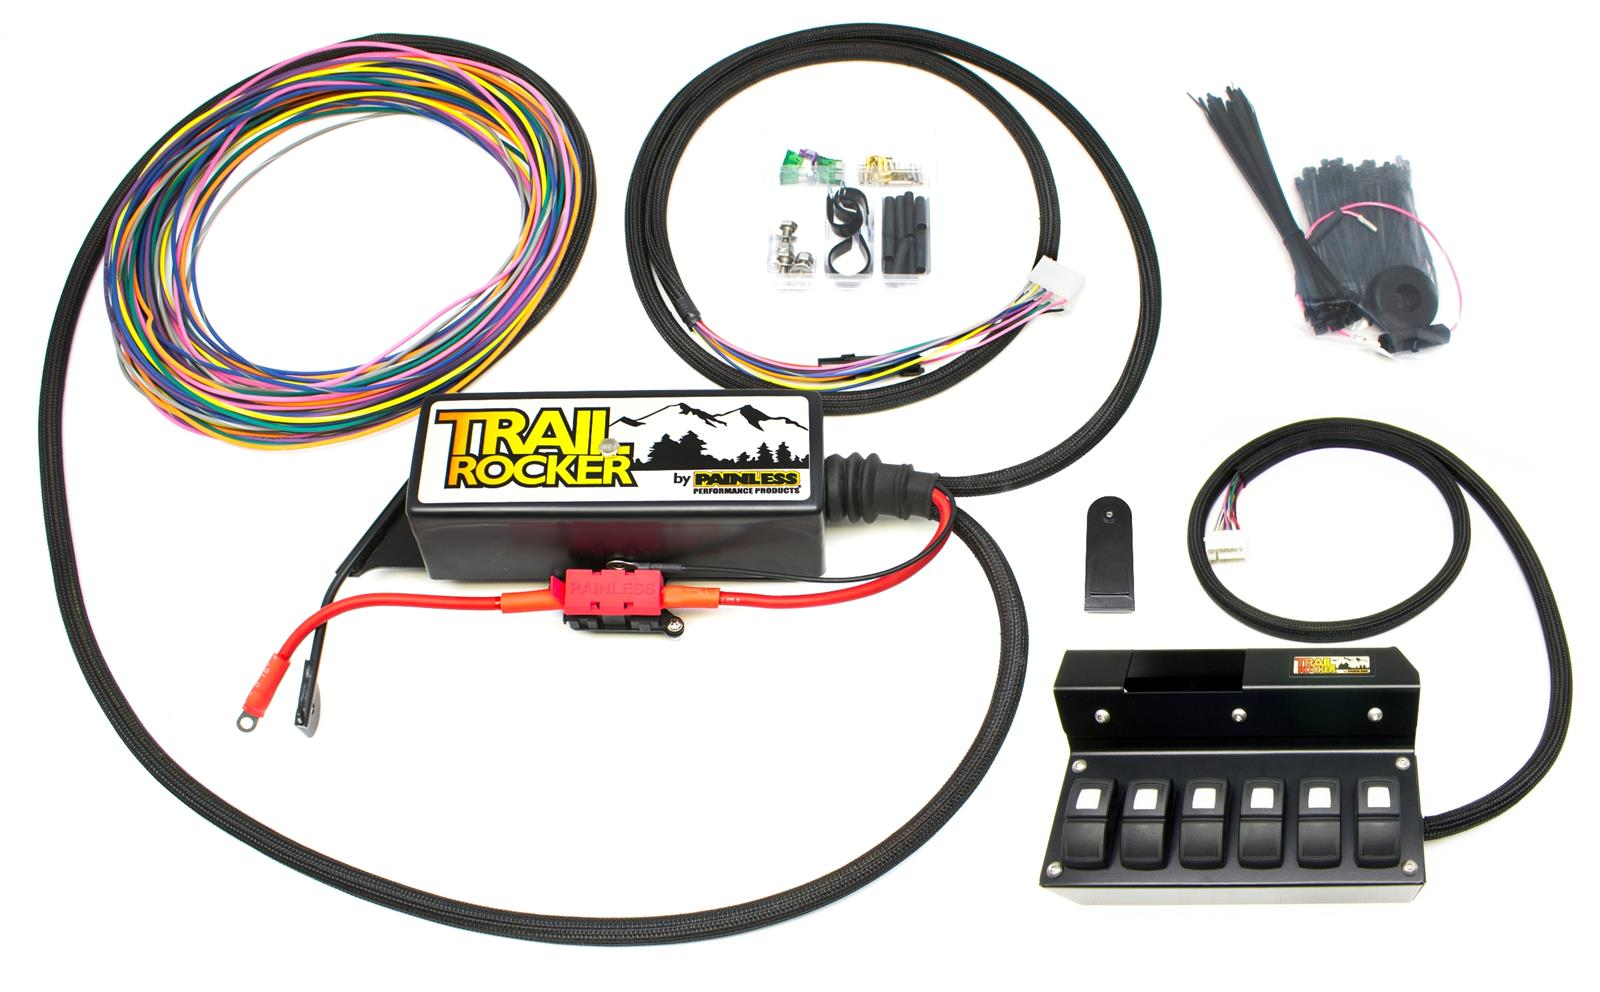 hight resolution of painless performance trail rocker jeep jk accessory control systems 57004 free shipping on orders over 99 at summit racing